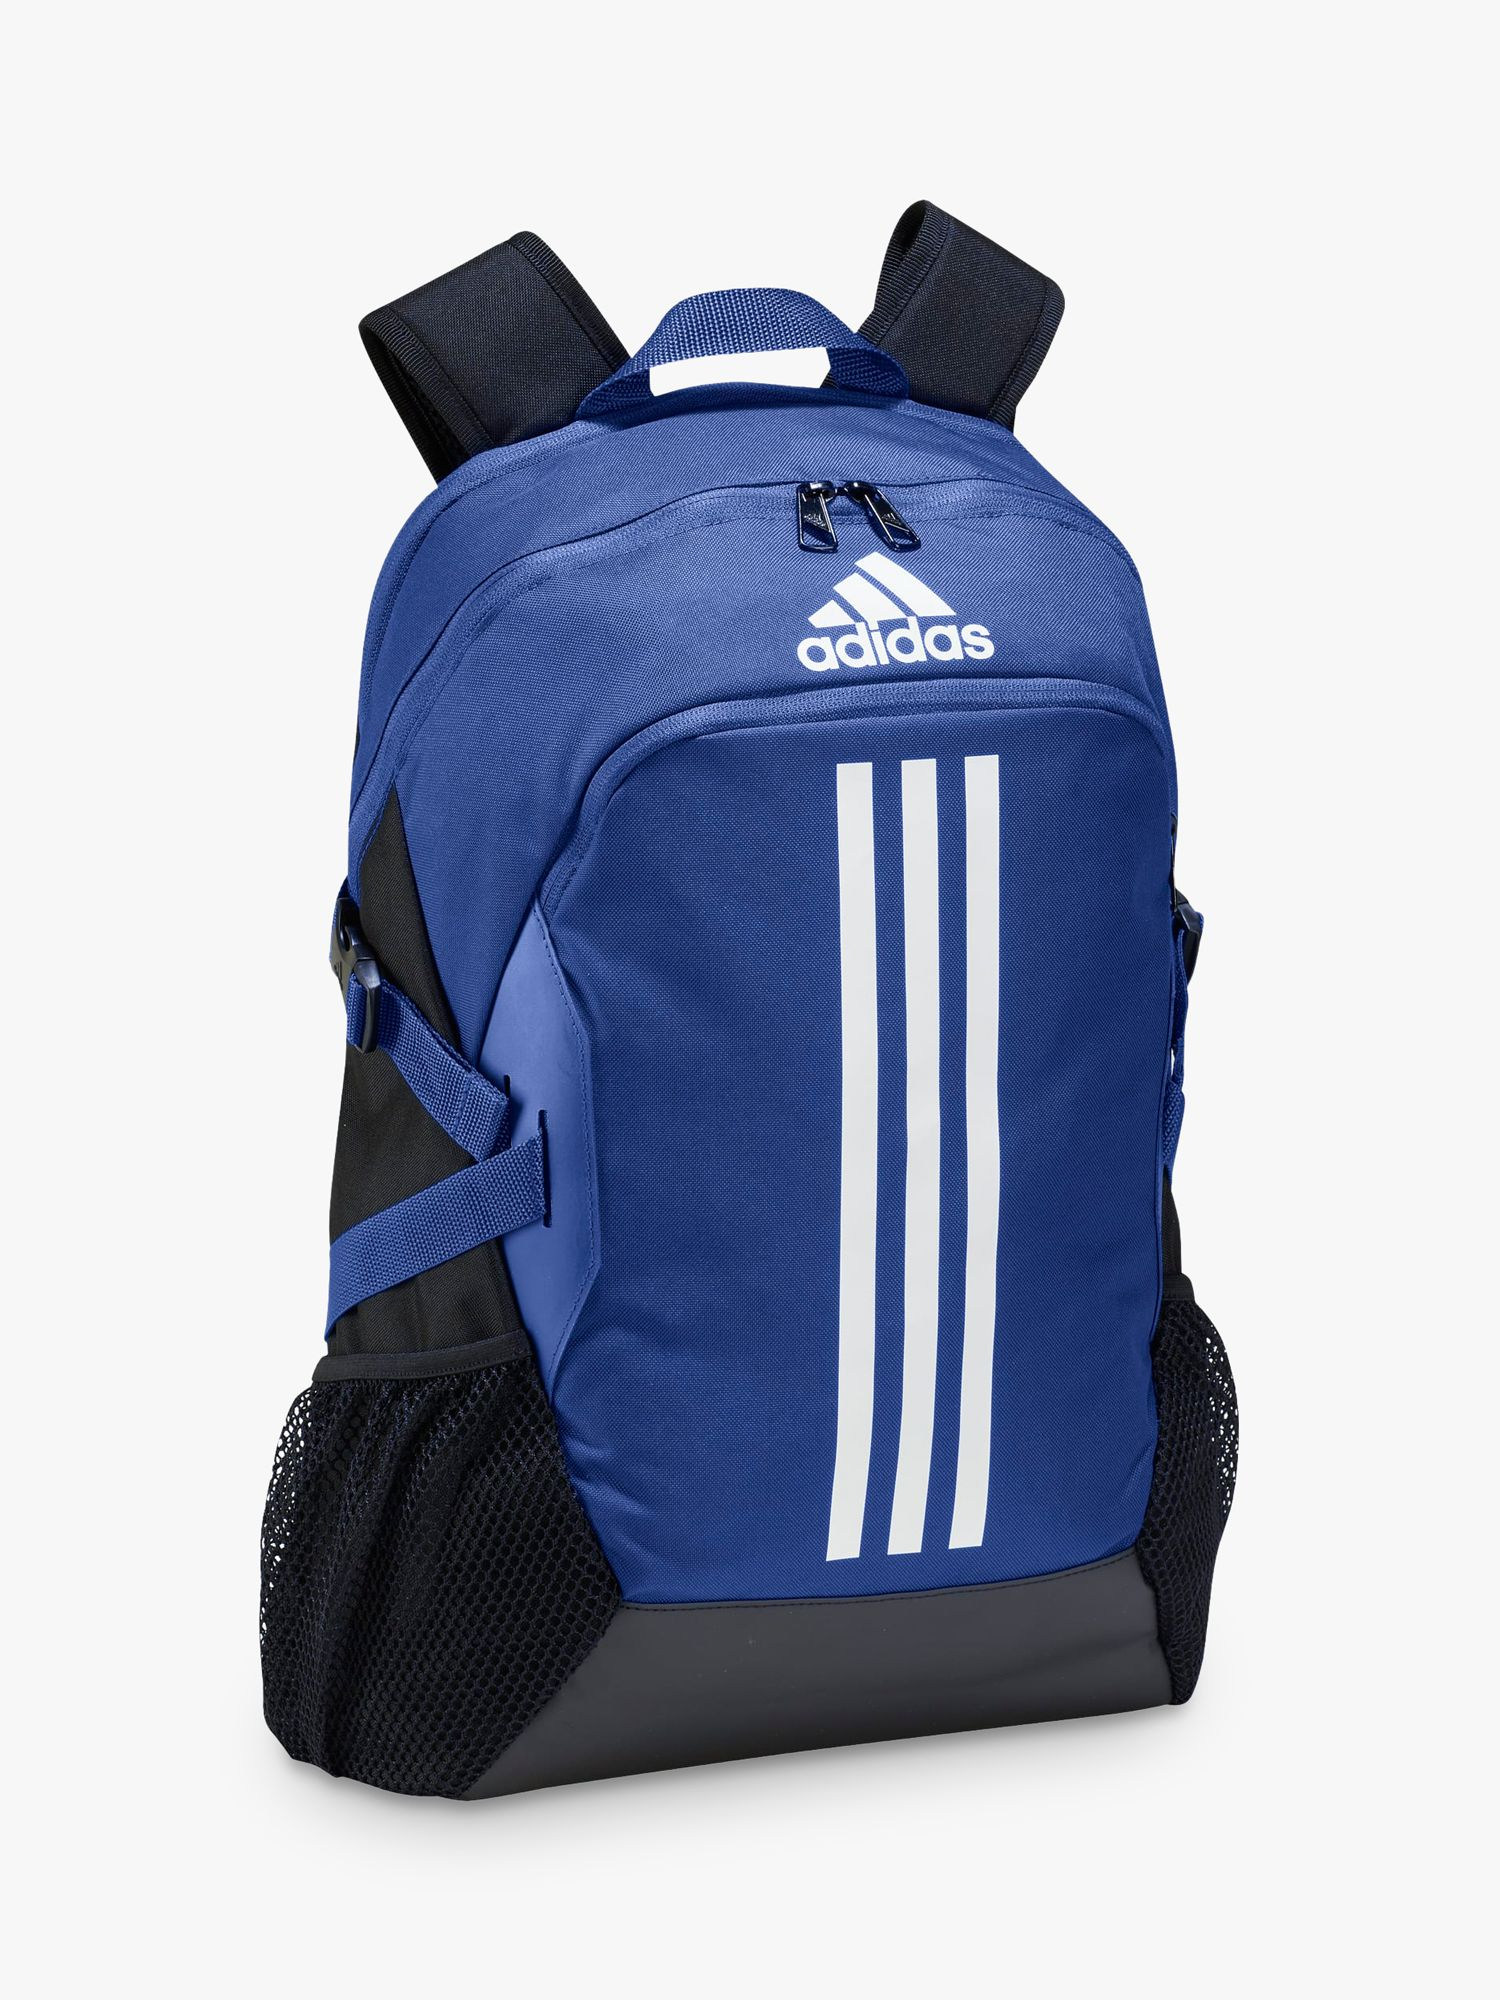 Adidas adidas Power 5 Backpack